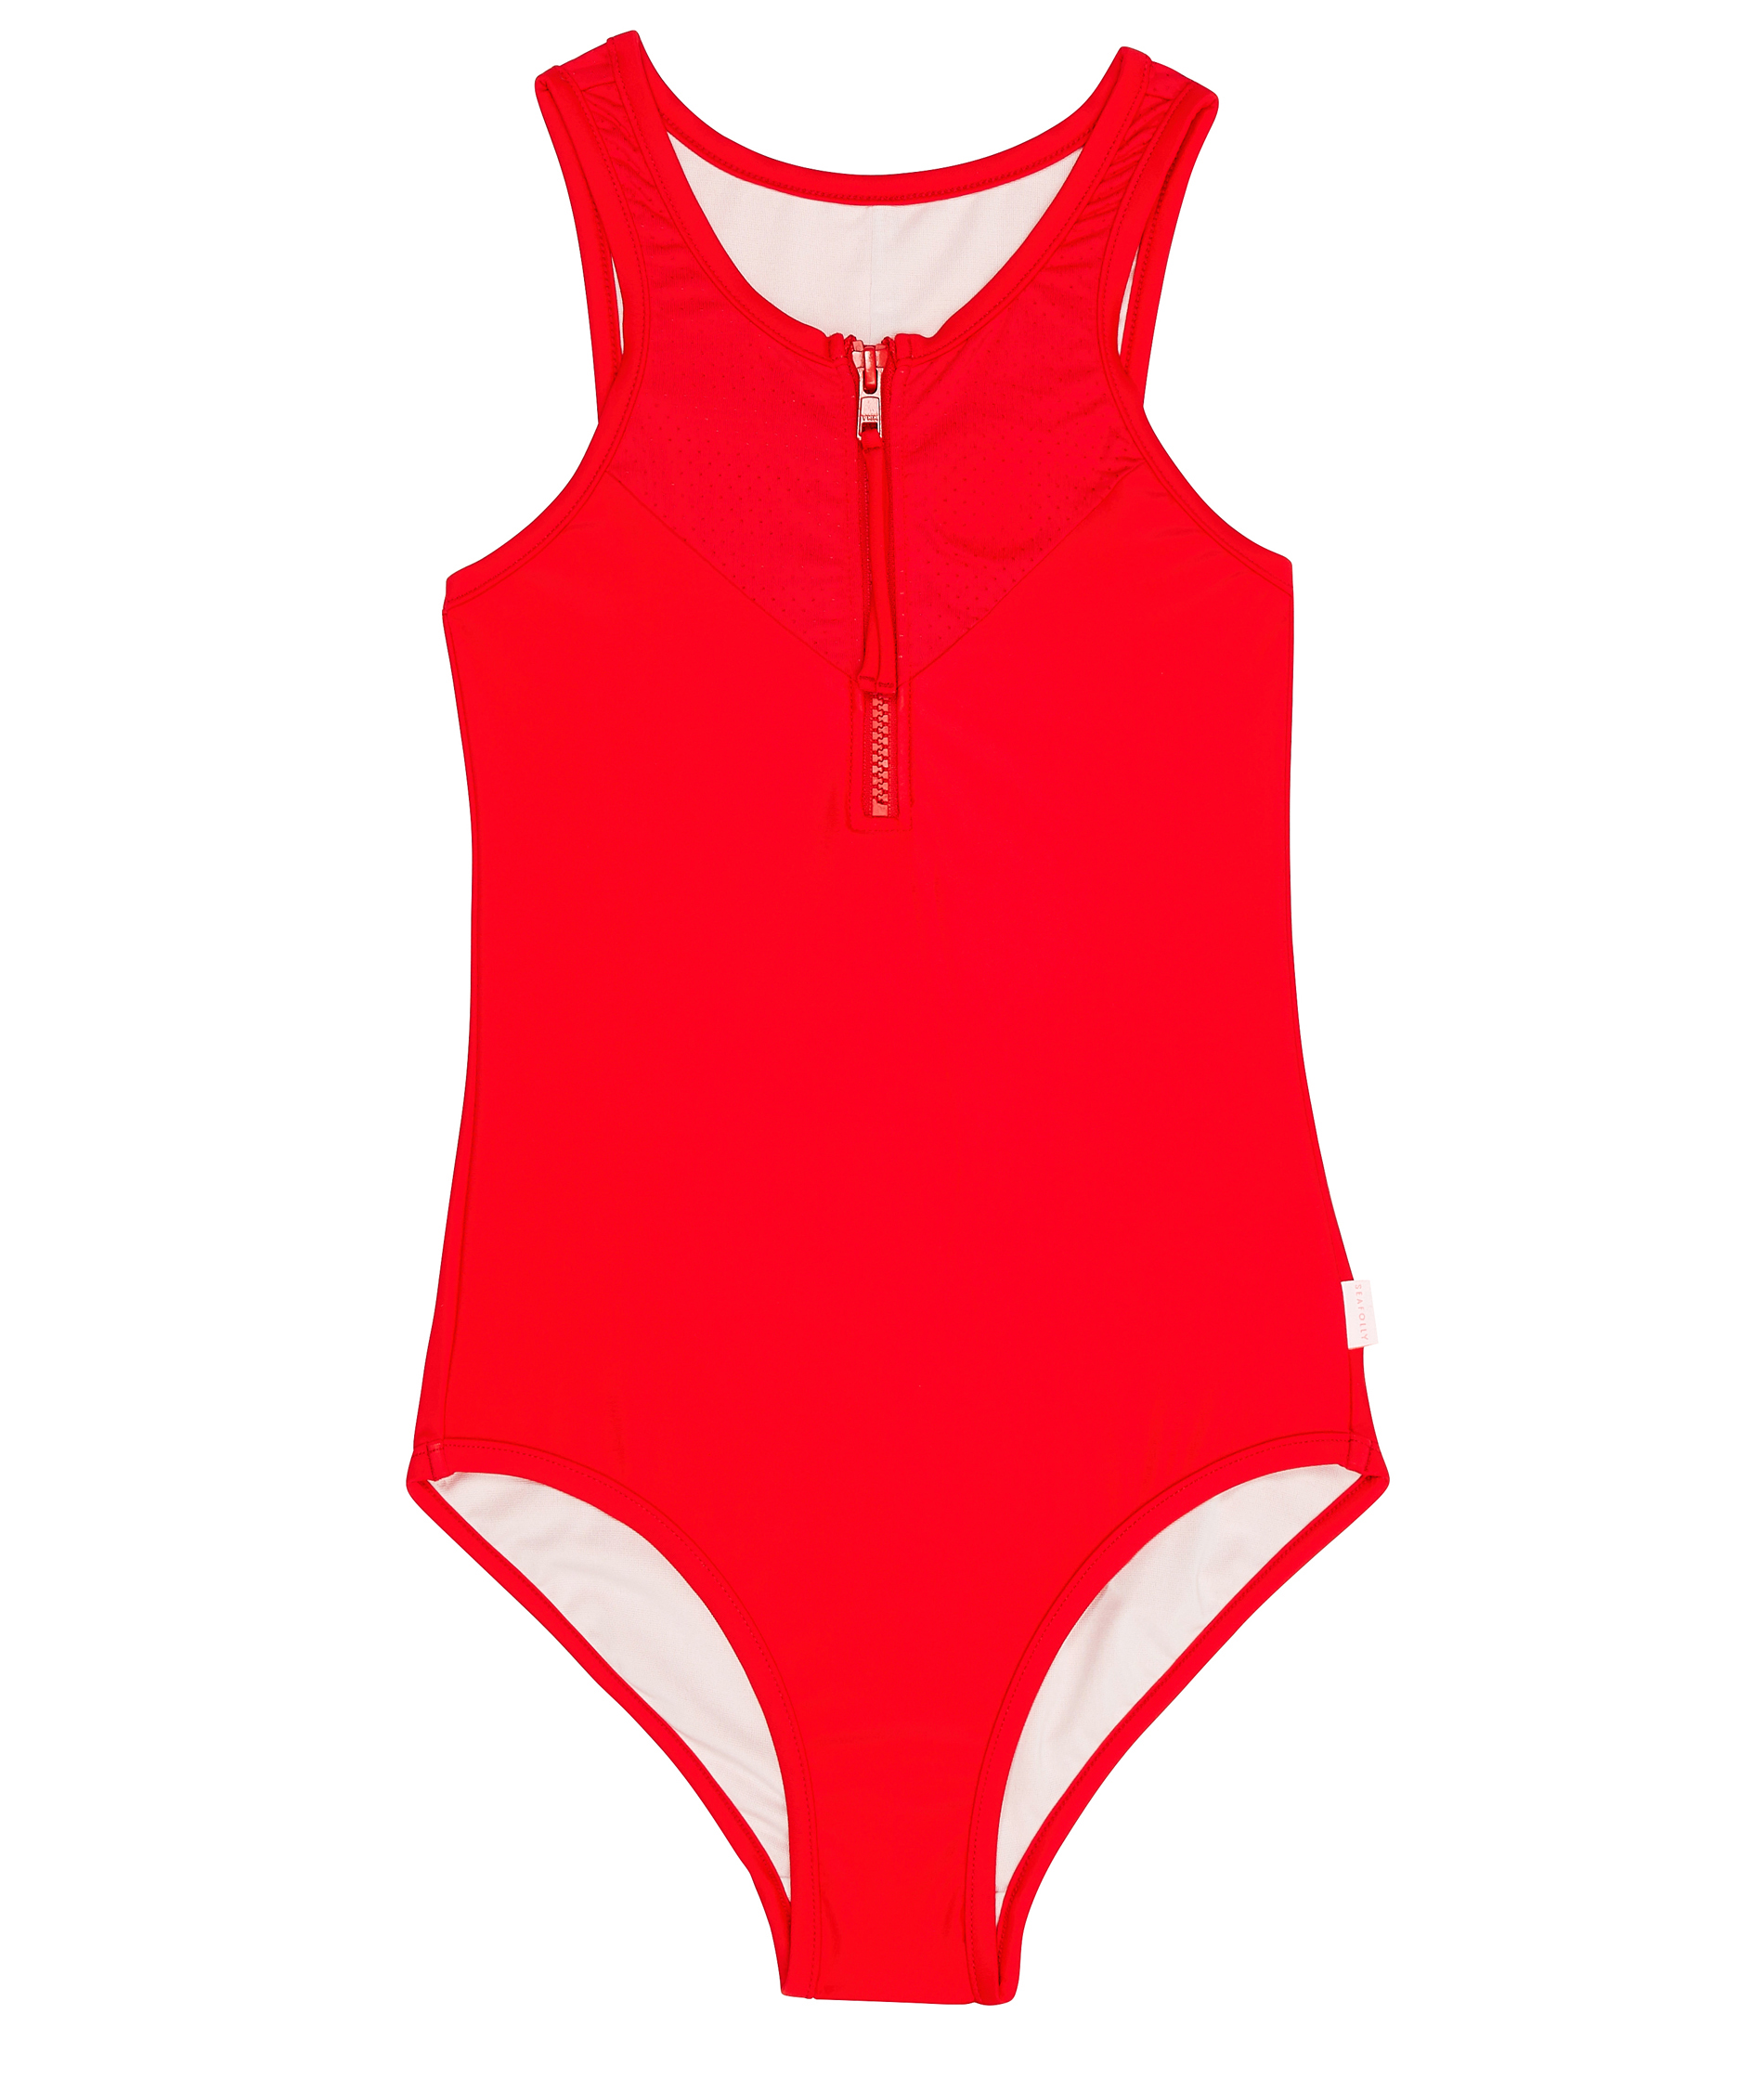 Seafolly Kids Summer Essentials High Neck Tank One Piece - Opal and Ruby